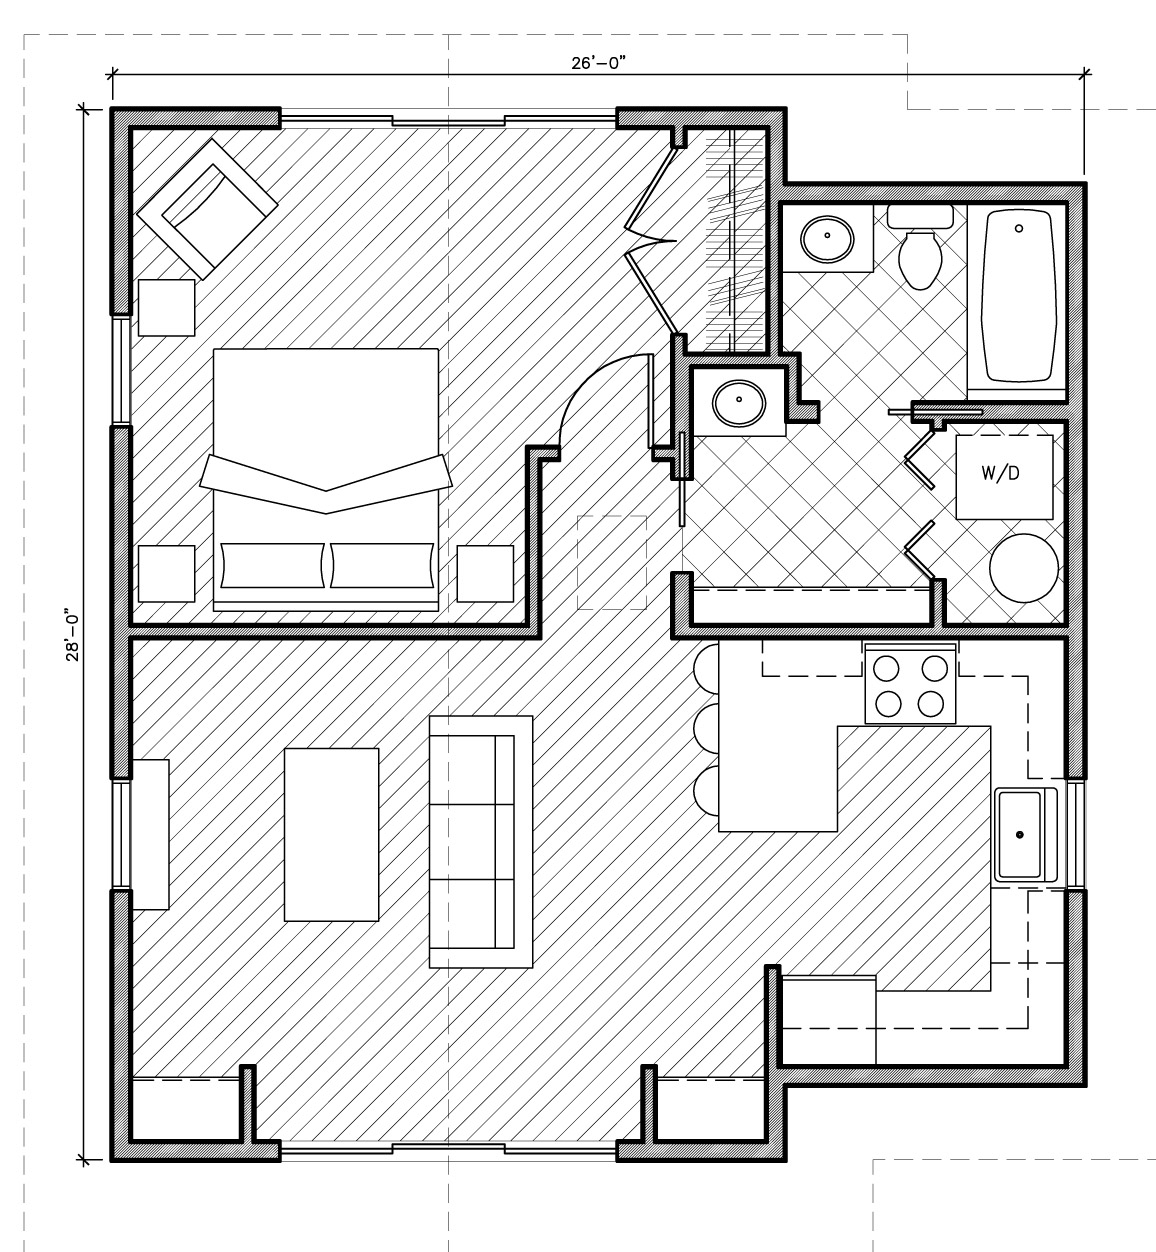 1000 square feet house plans with on 600 sq ft house plans 30 x 20